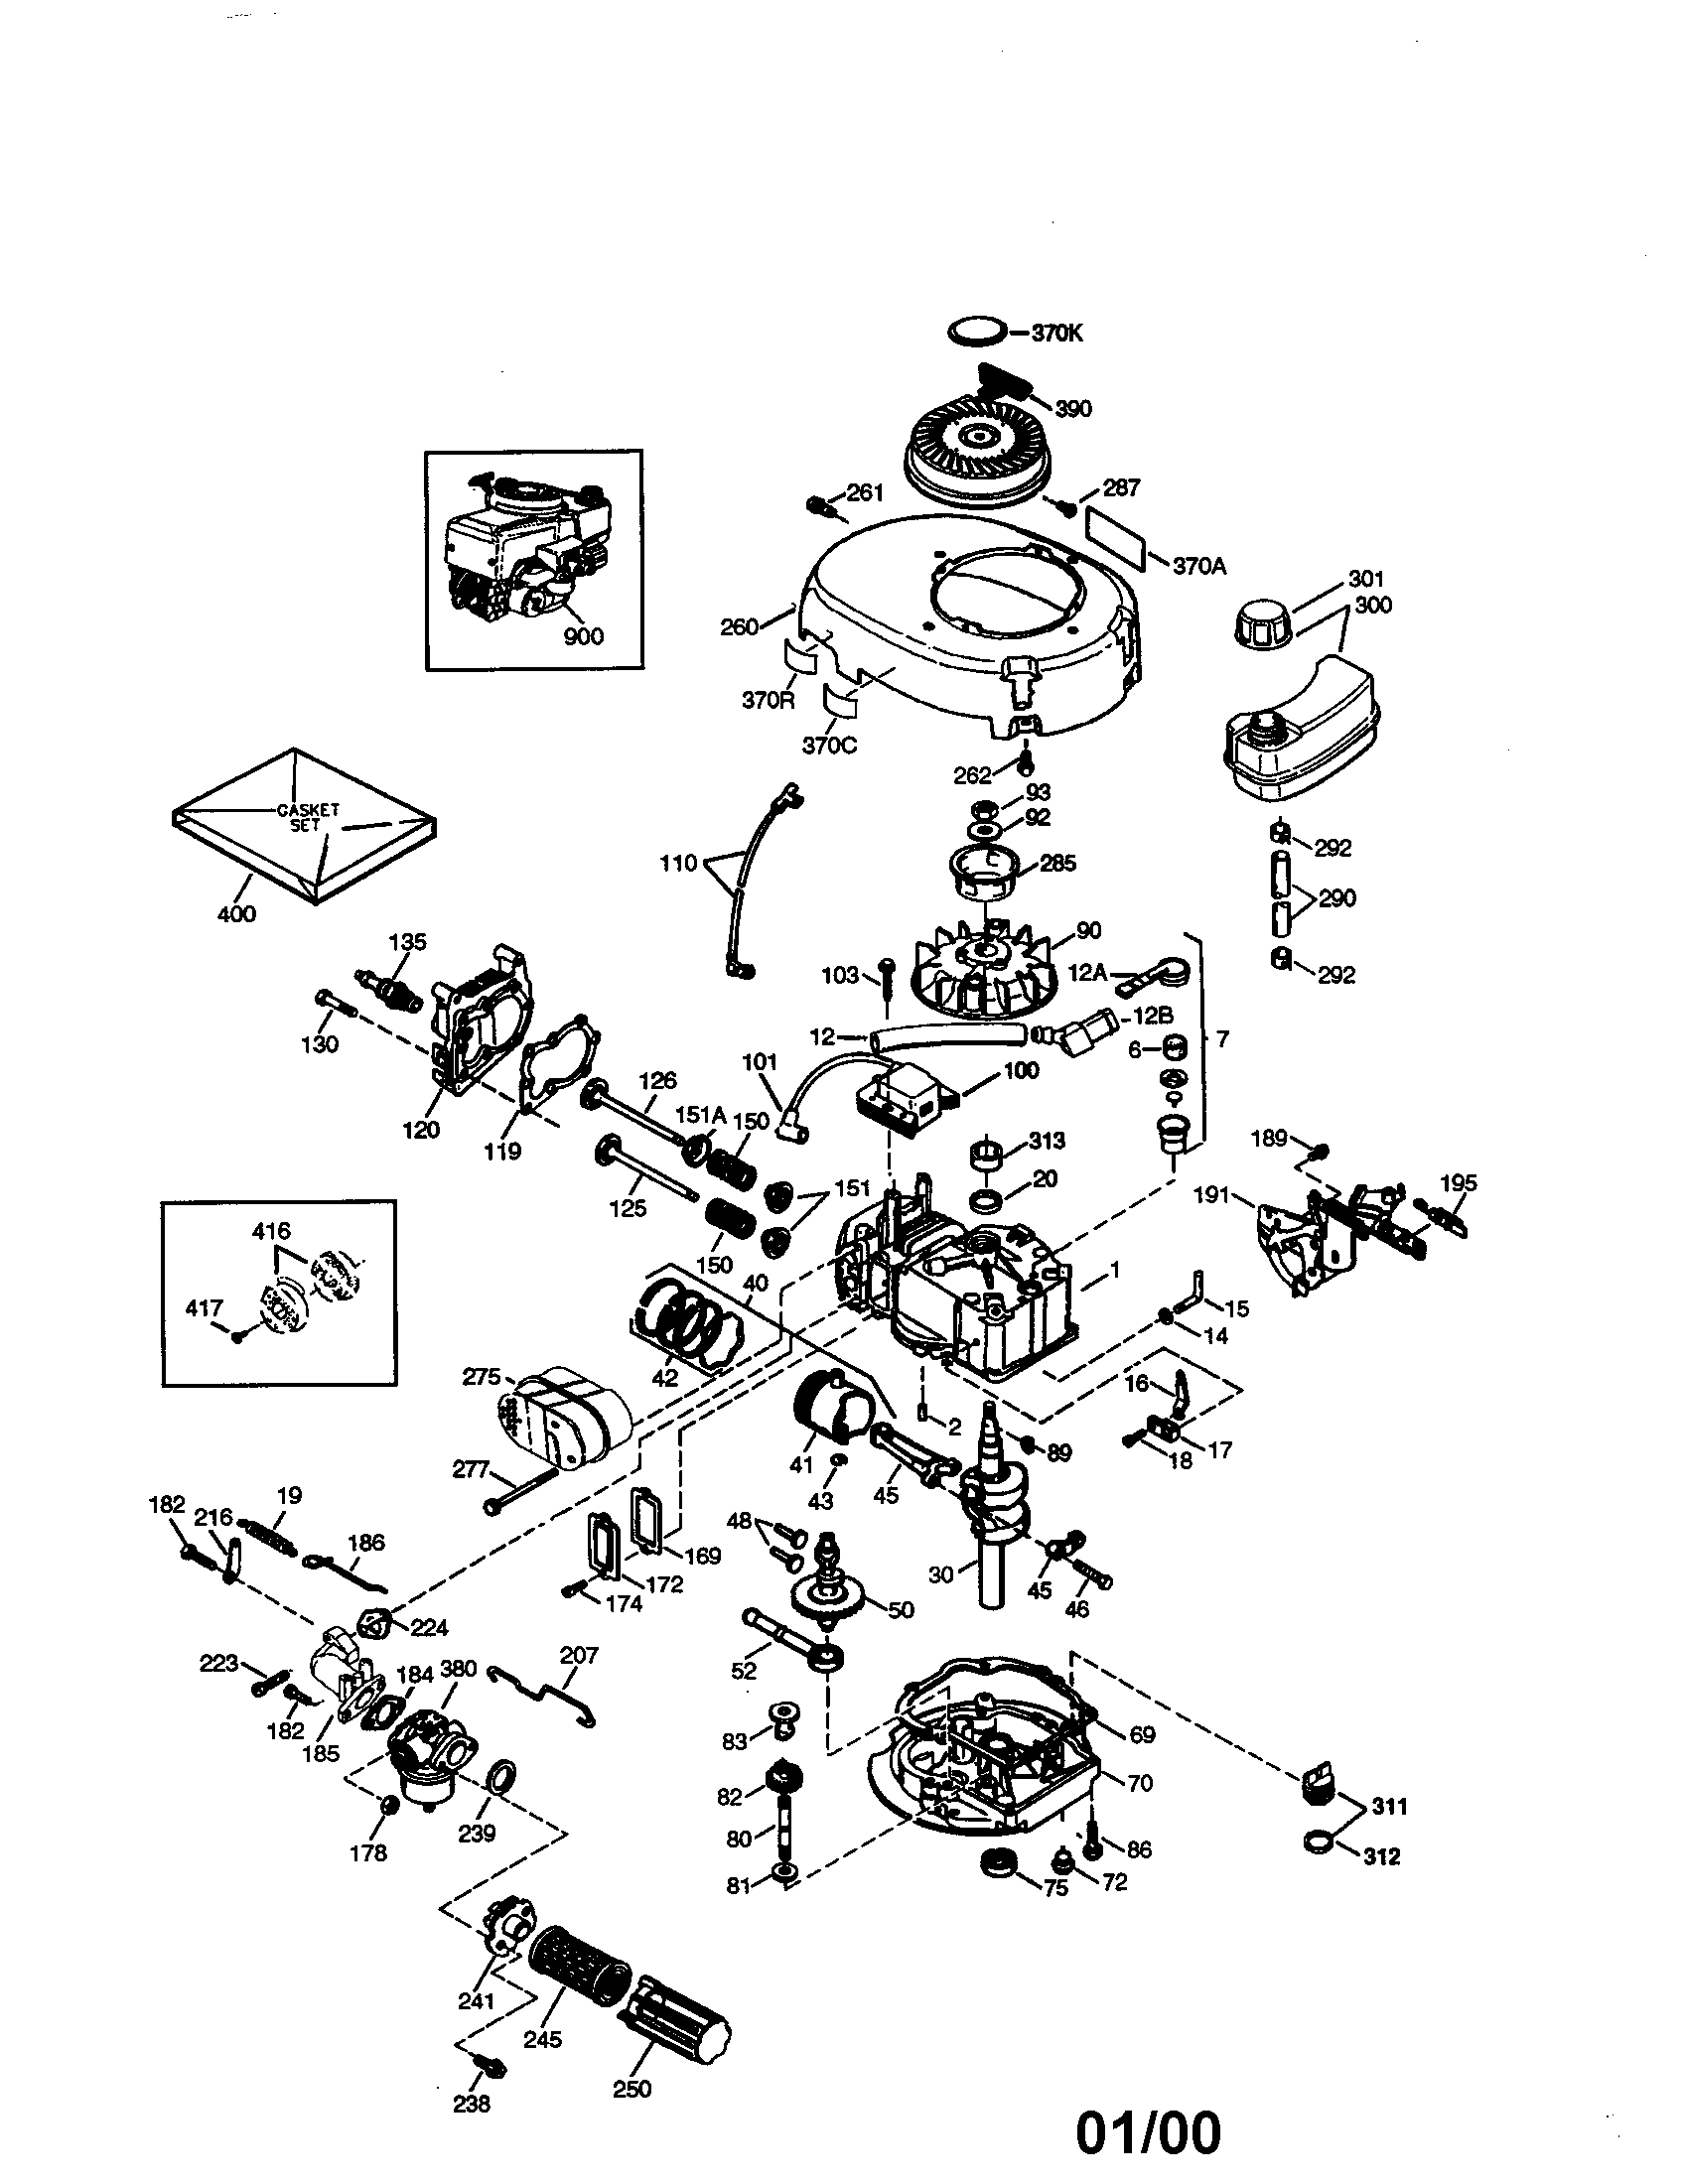 Not Bad Freeware Blog: TECUMSEH CARBURETOR MANUAL FREE